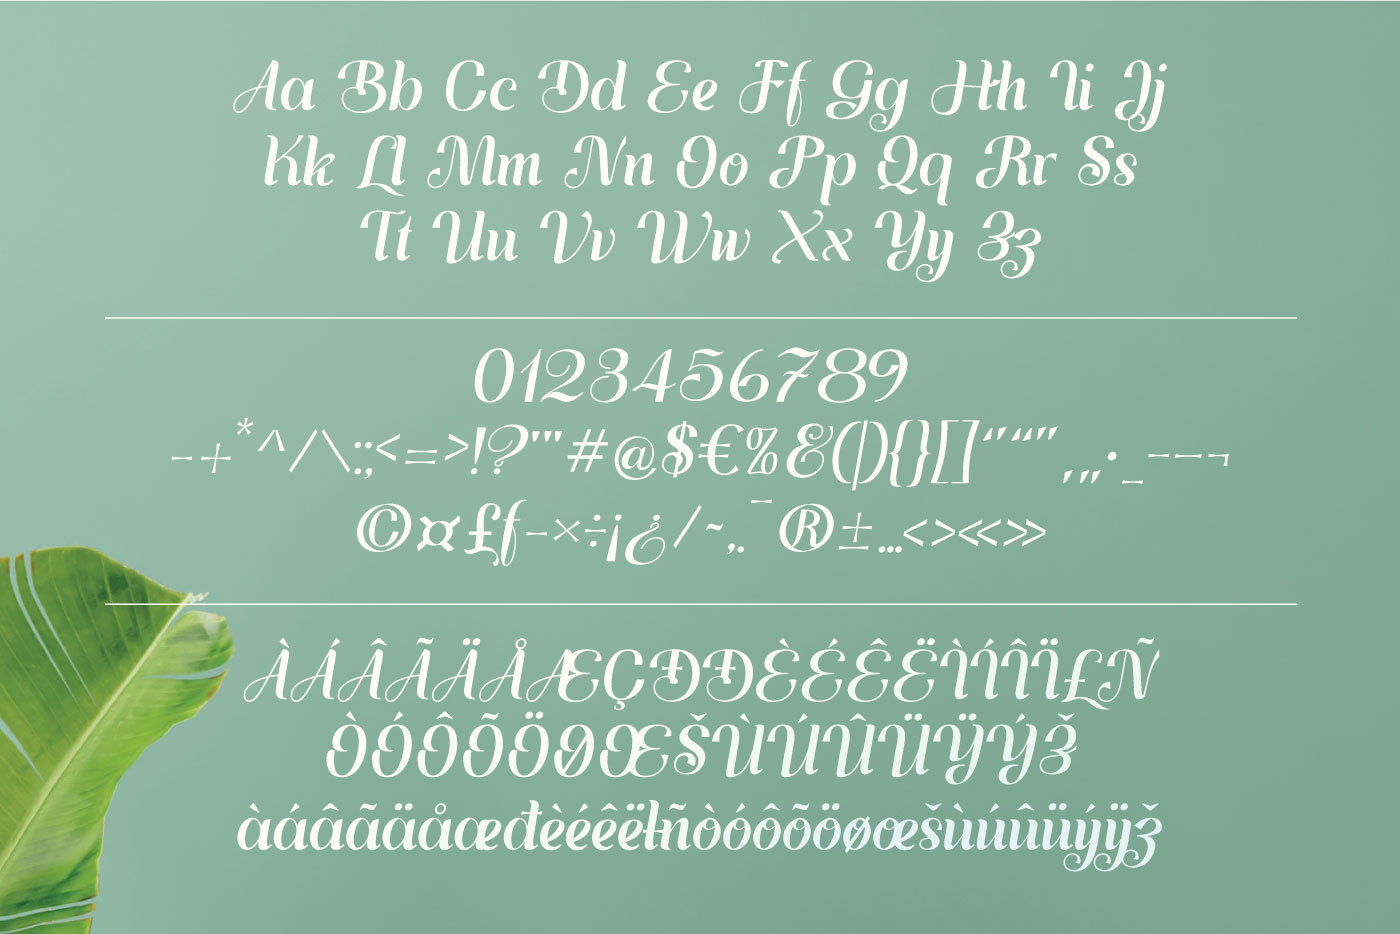 The general appearance of the font is depicted on a light turquoise background.